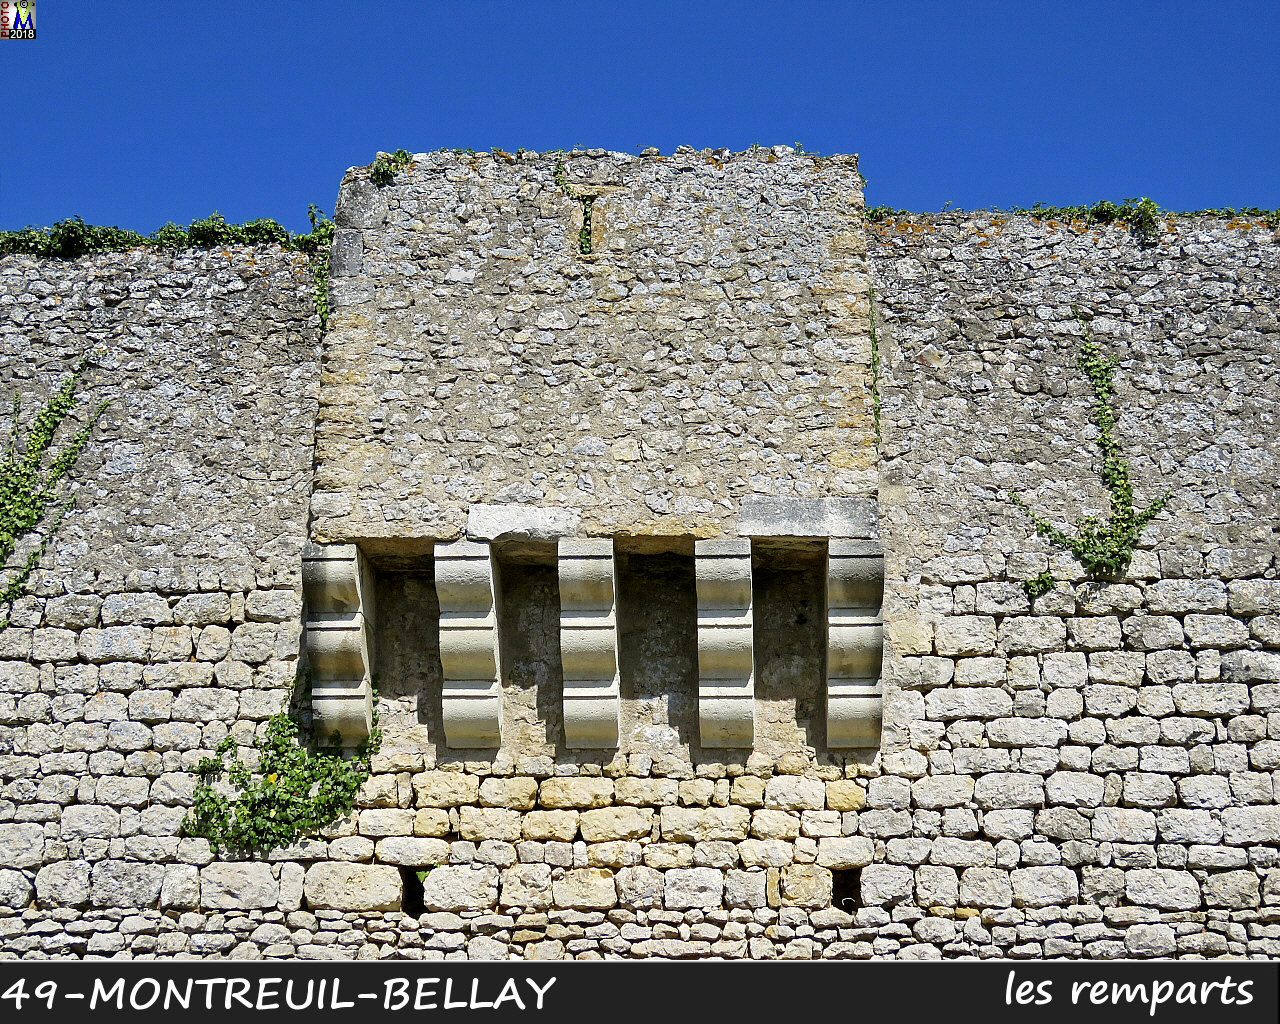 49MONTREUIL-BELLAY_remparts_1006.jpg